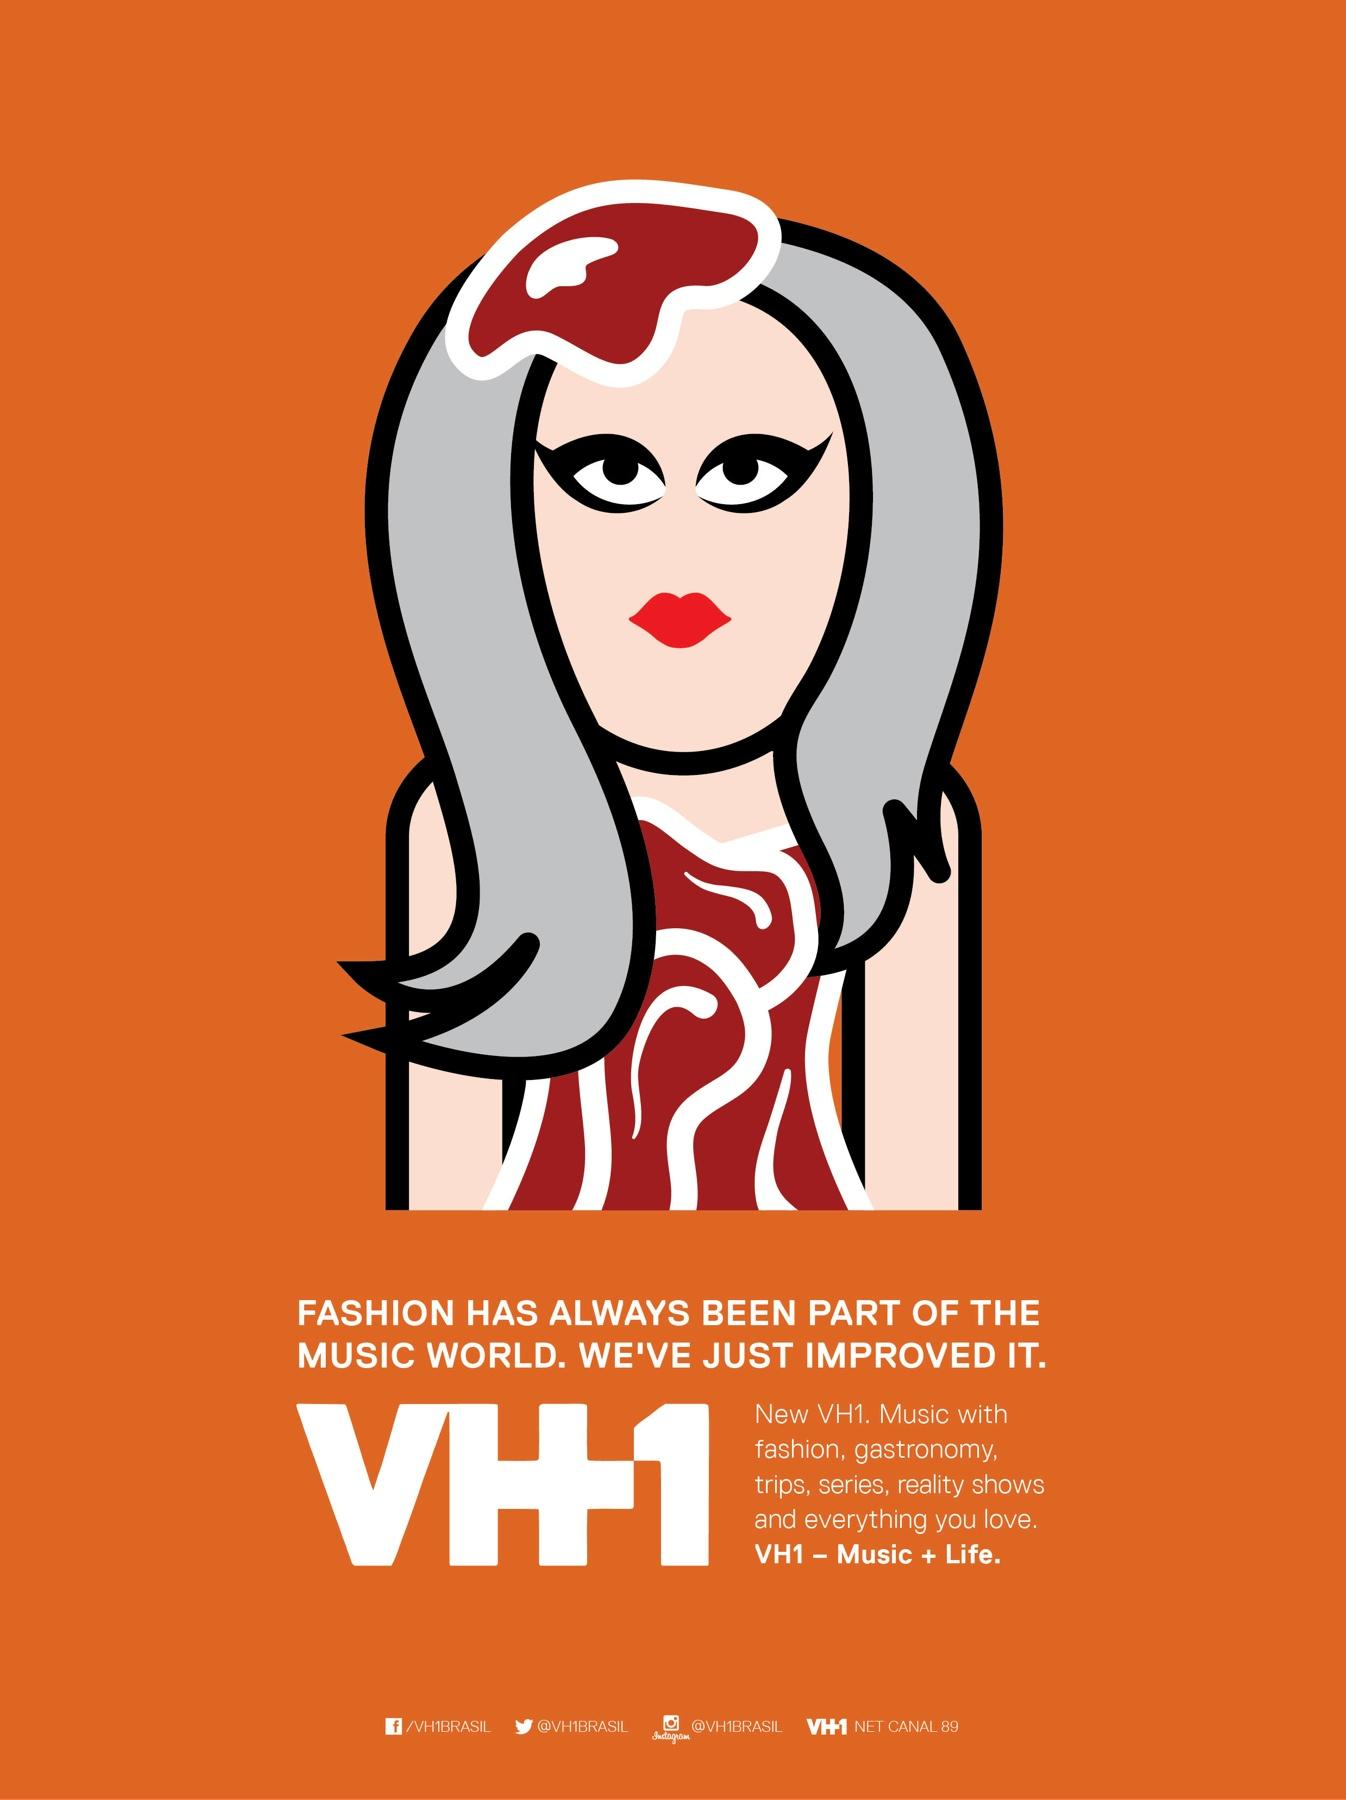 VH1 Print Ad -  Fashion